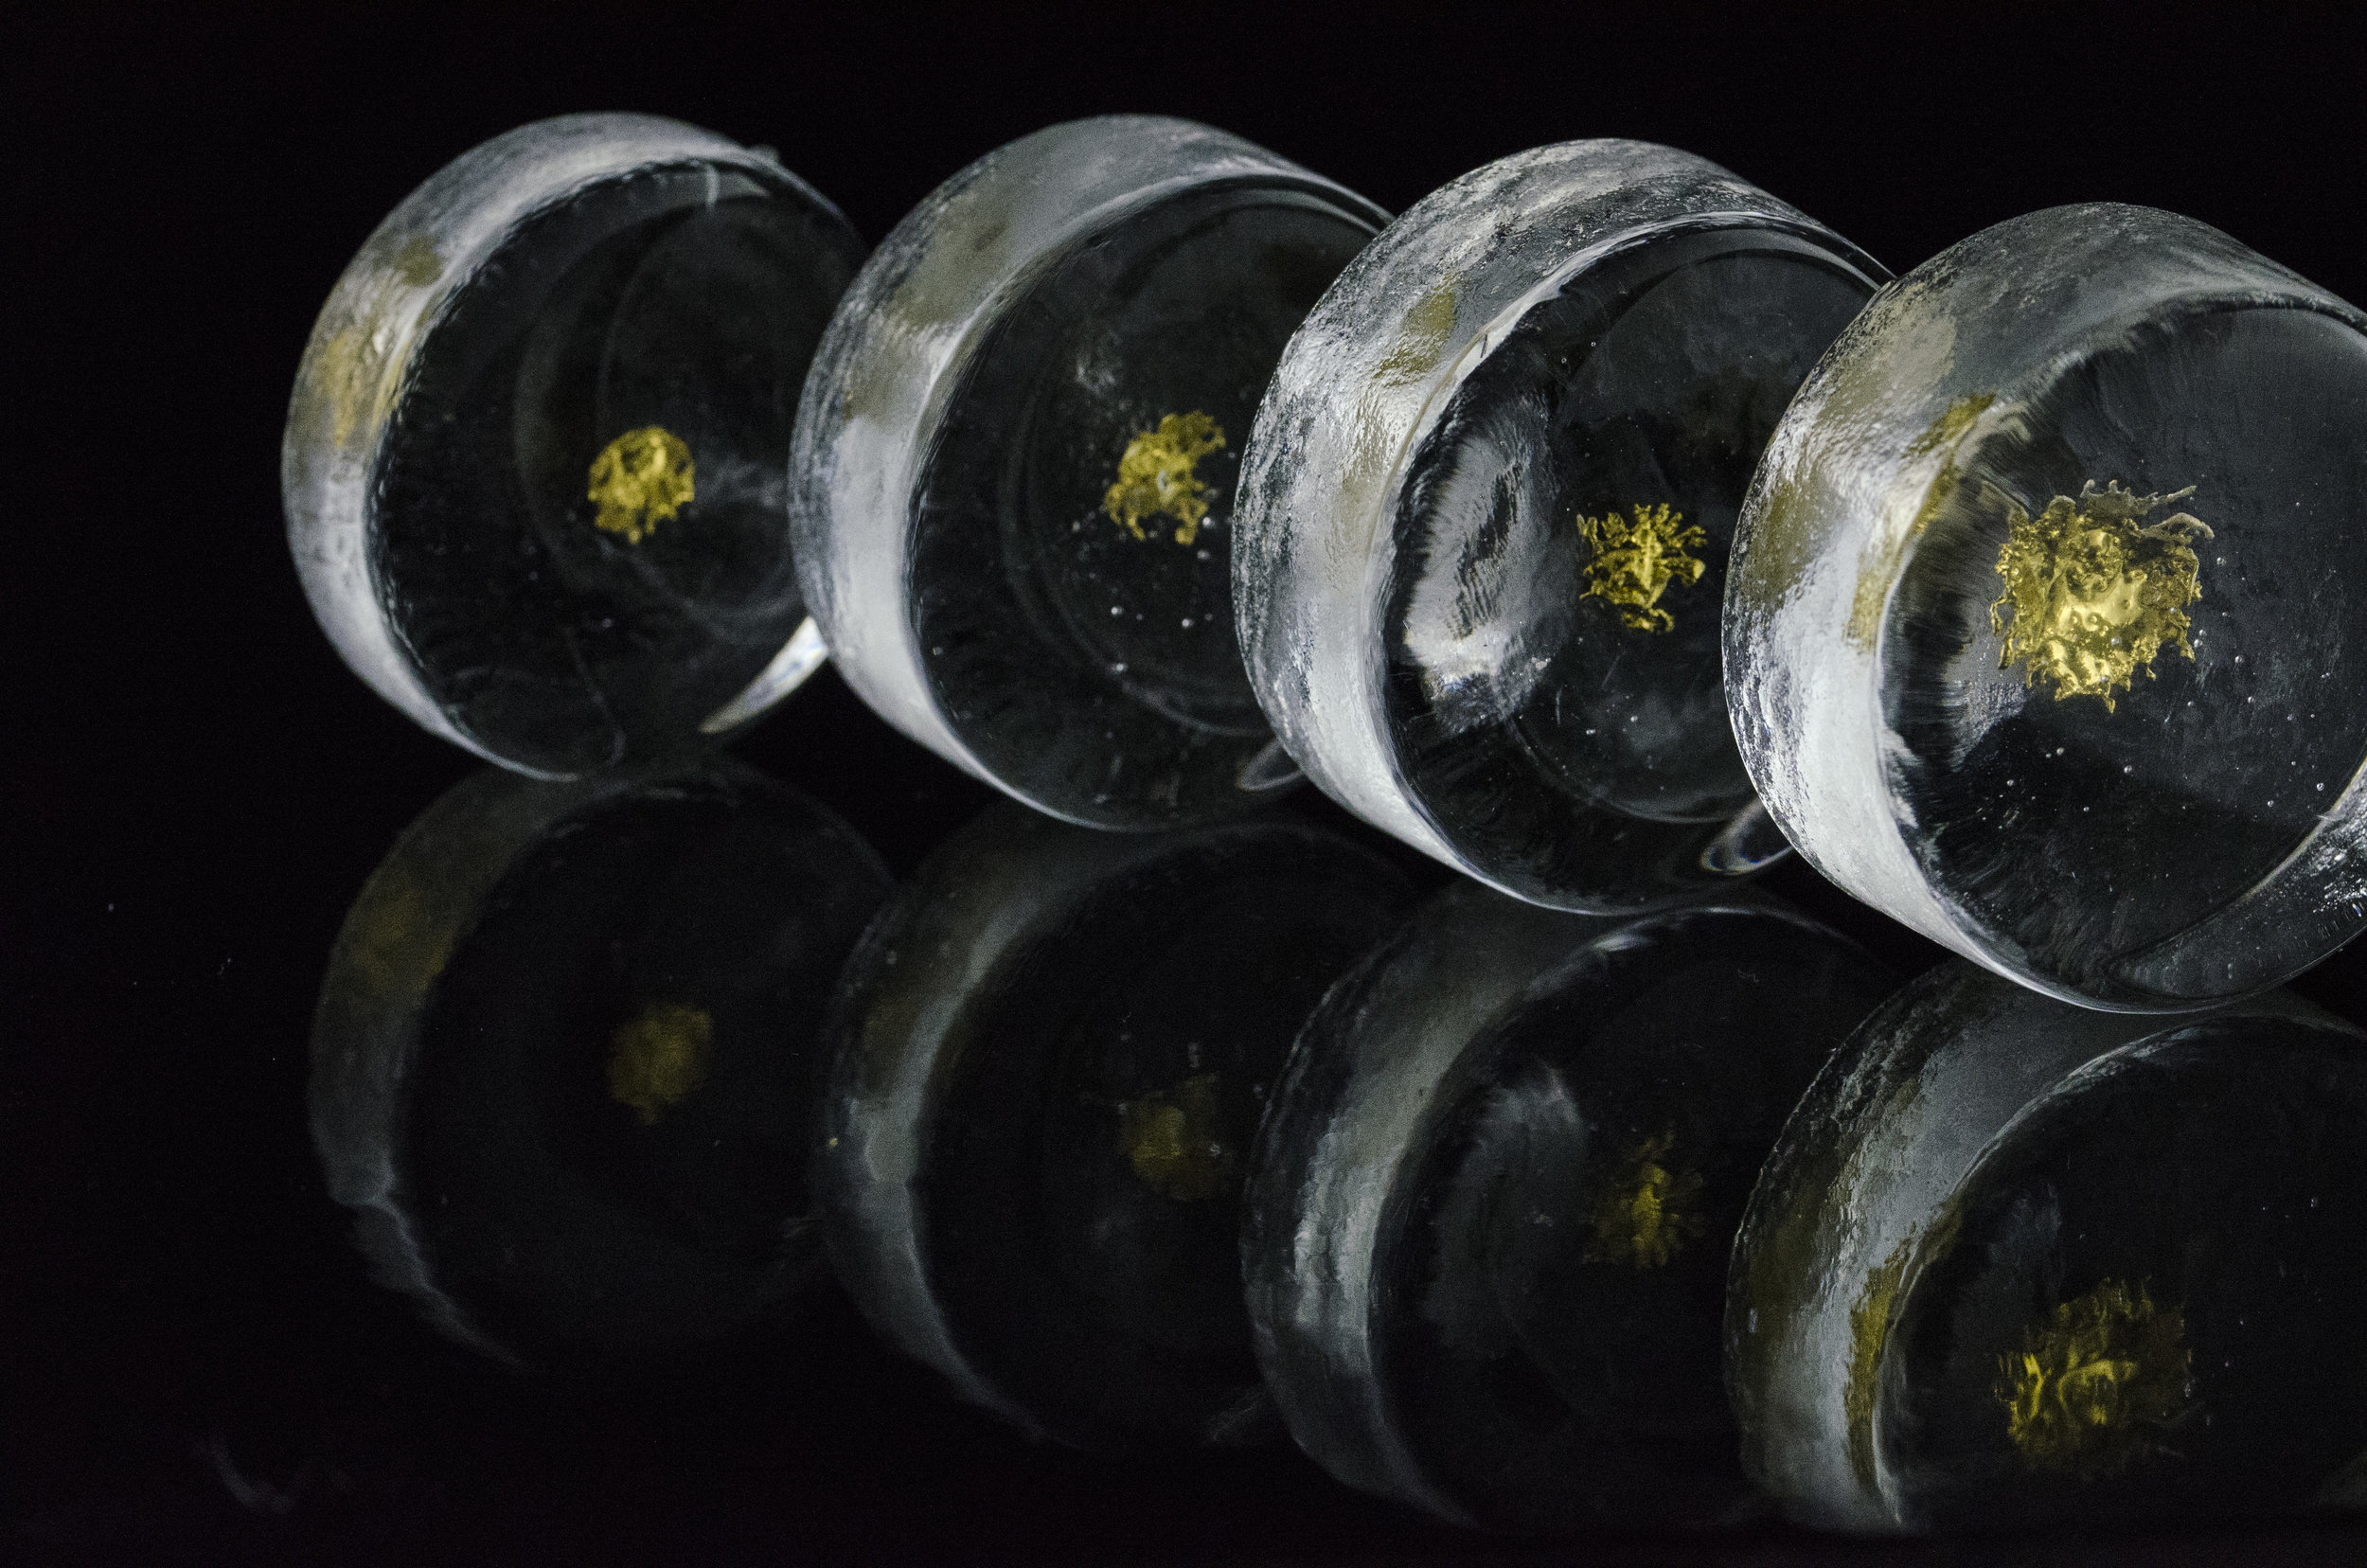 Series of Waken Glass rounds with 24K gold